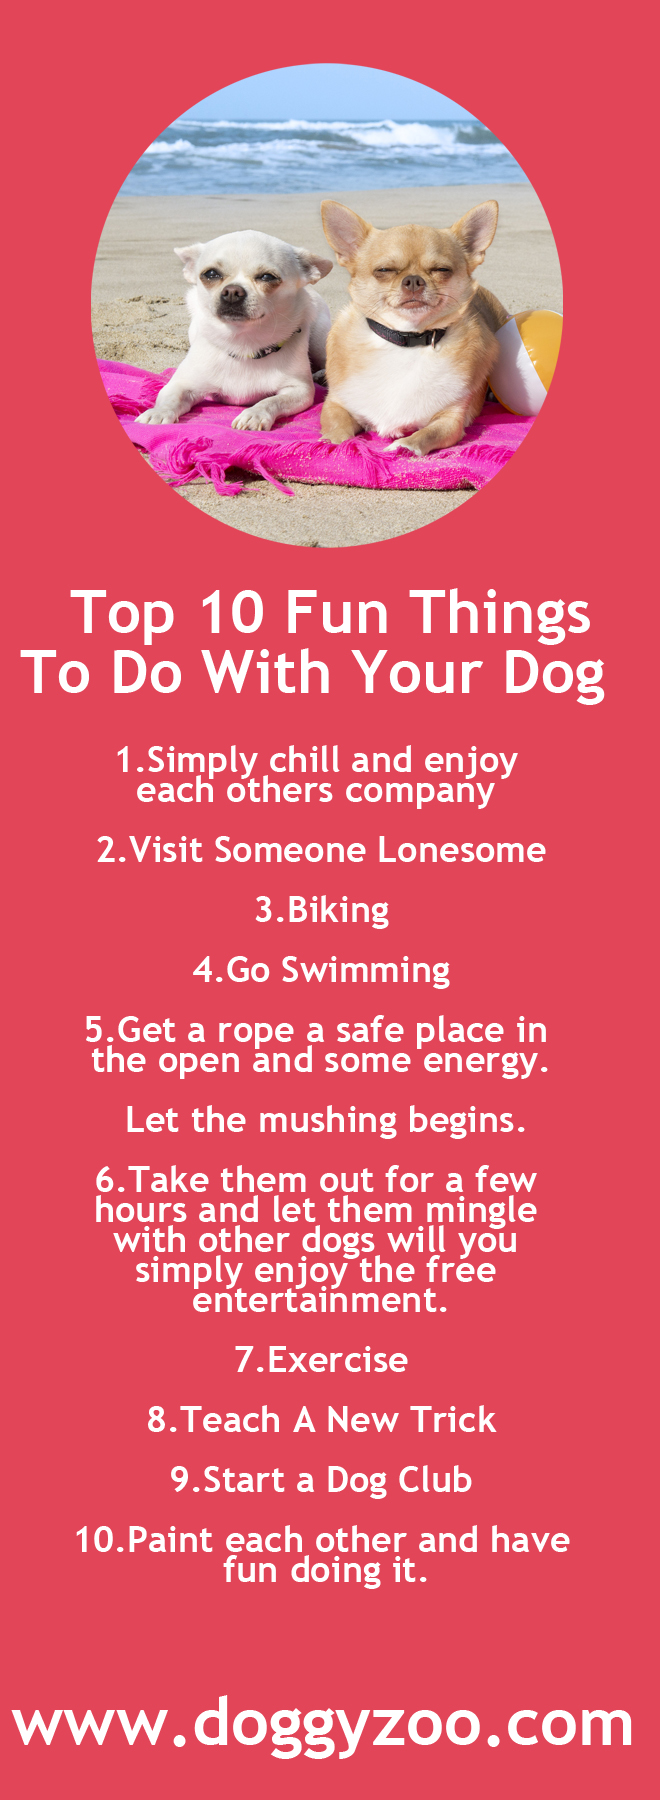 10 Fun Things To Do: Top 10 Fun Things To Do With Your Dog